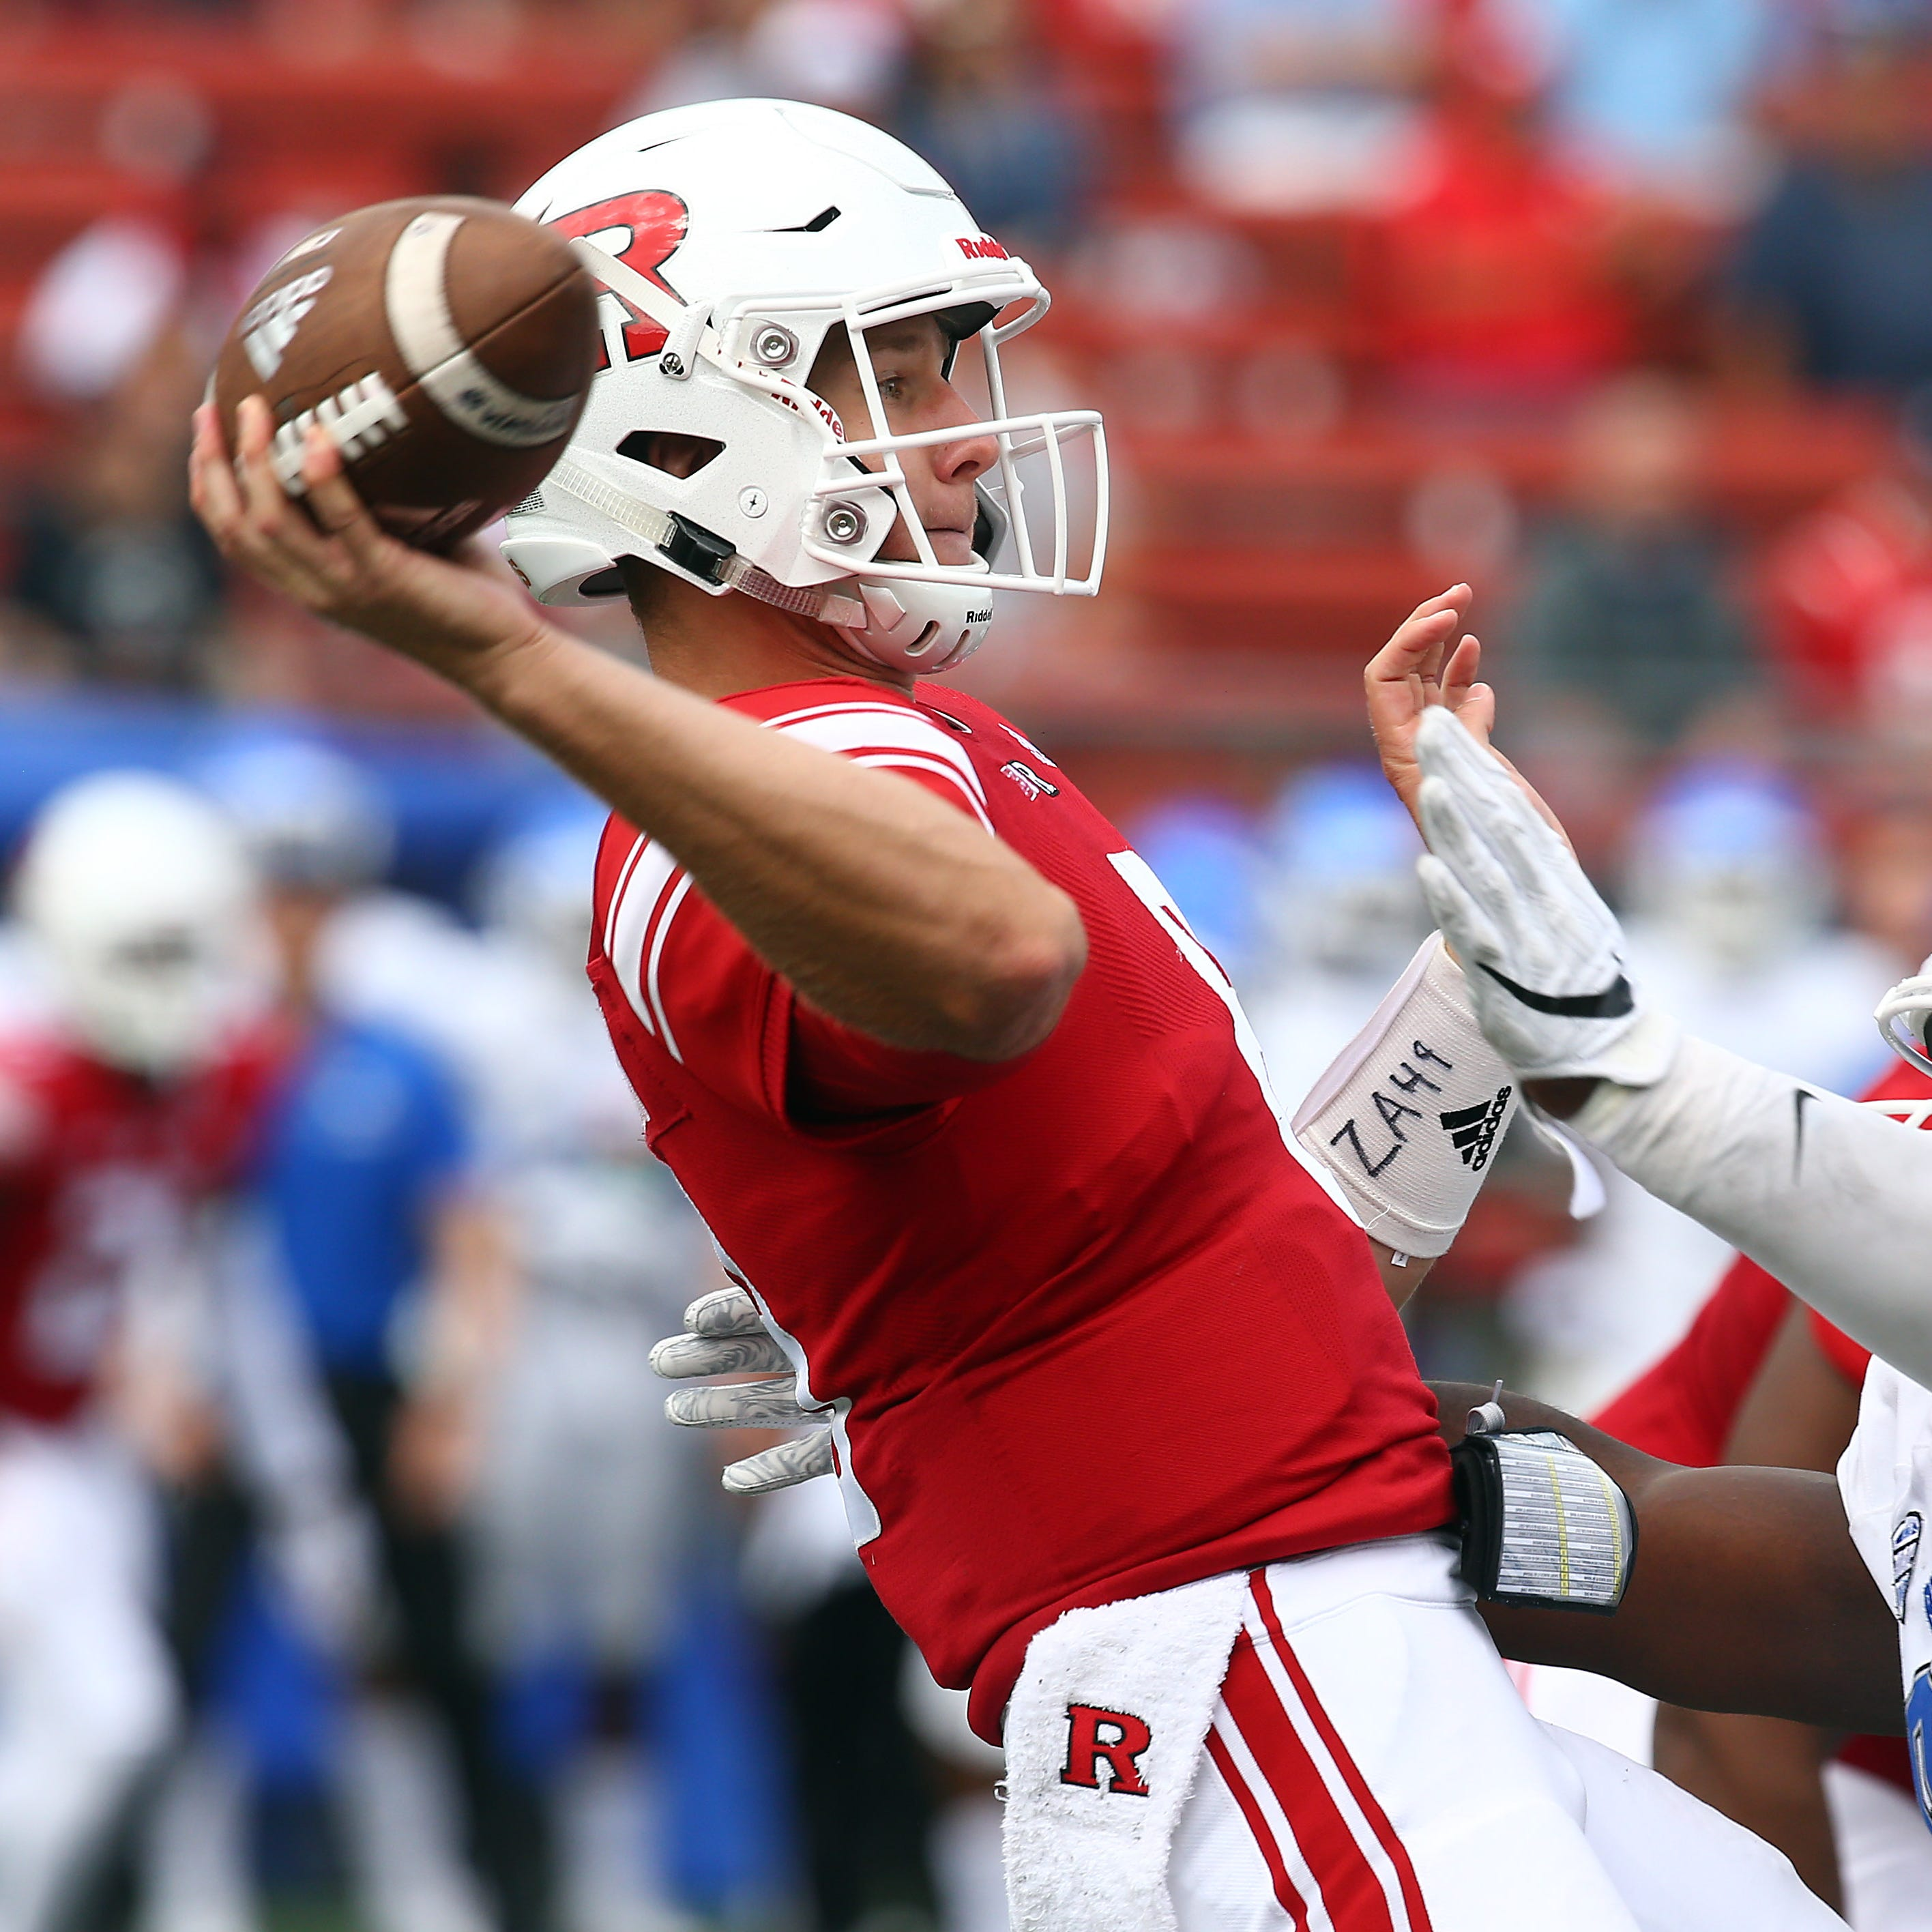 Rutgers football: Five takeaways, five quotes from Rutgers' 42-13 loss to Buffalo